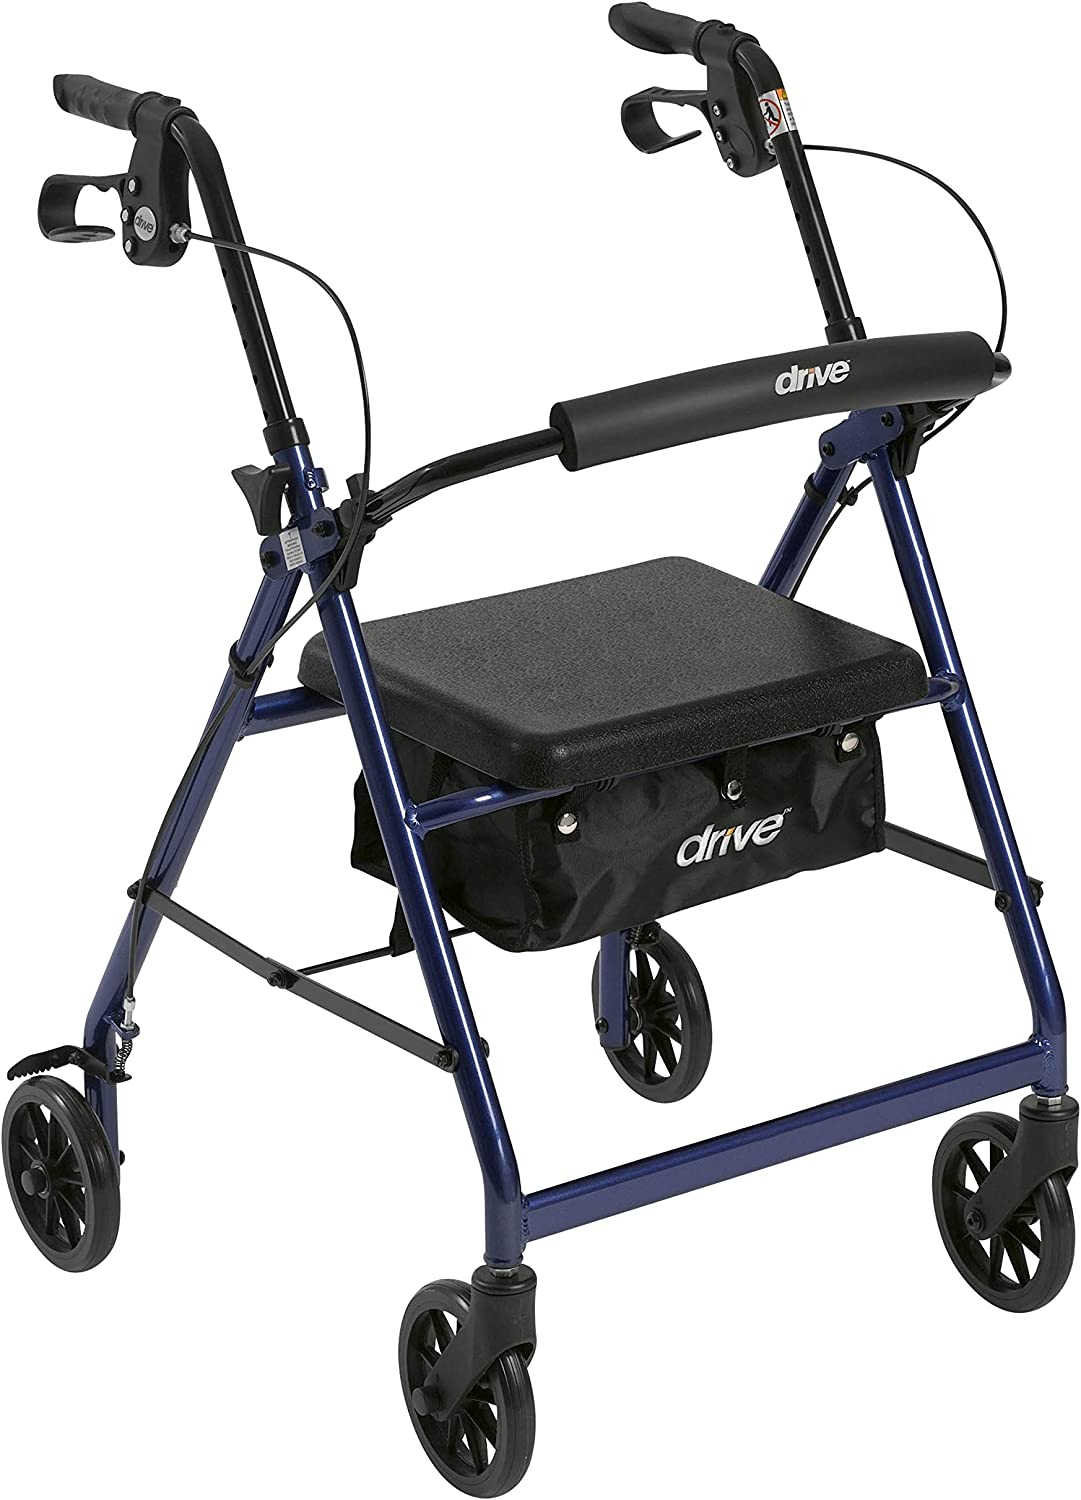 """Drive Medical Aluminum Rollator Walker Fold Up and Removable Back Support, Padded Seat, 6"""" Wheels, Blue"""